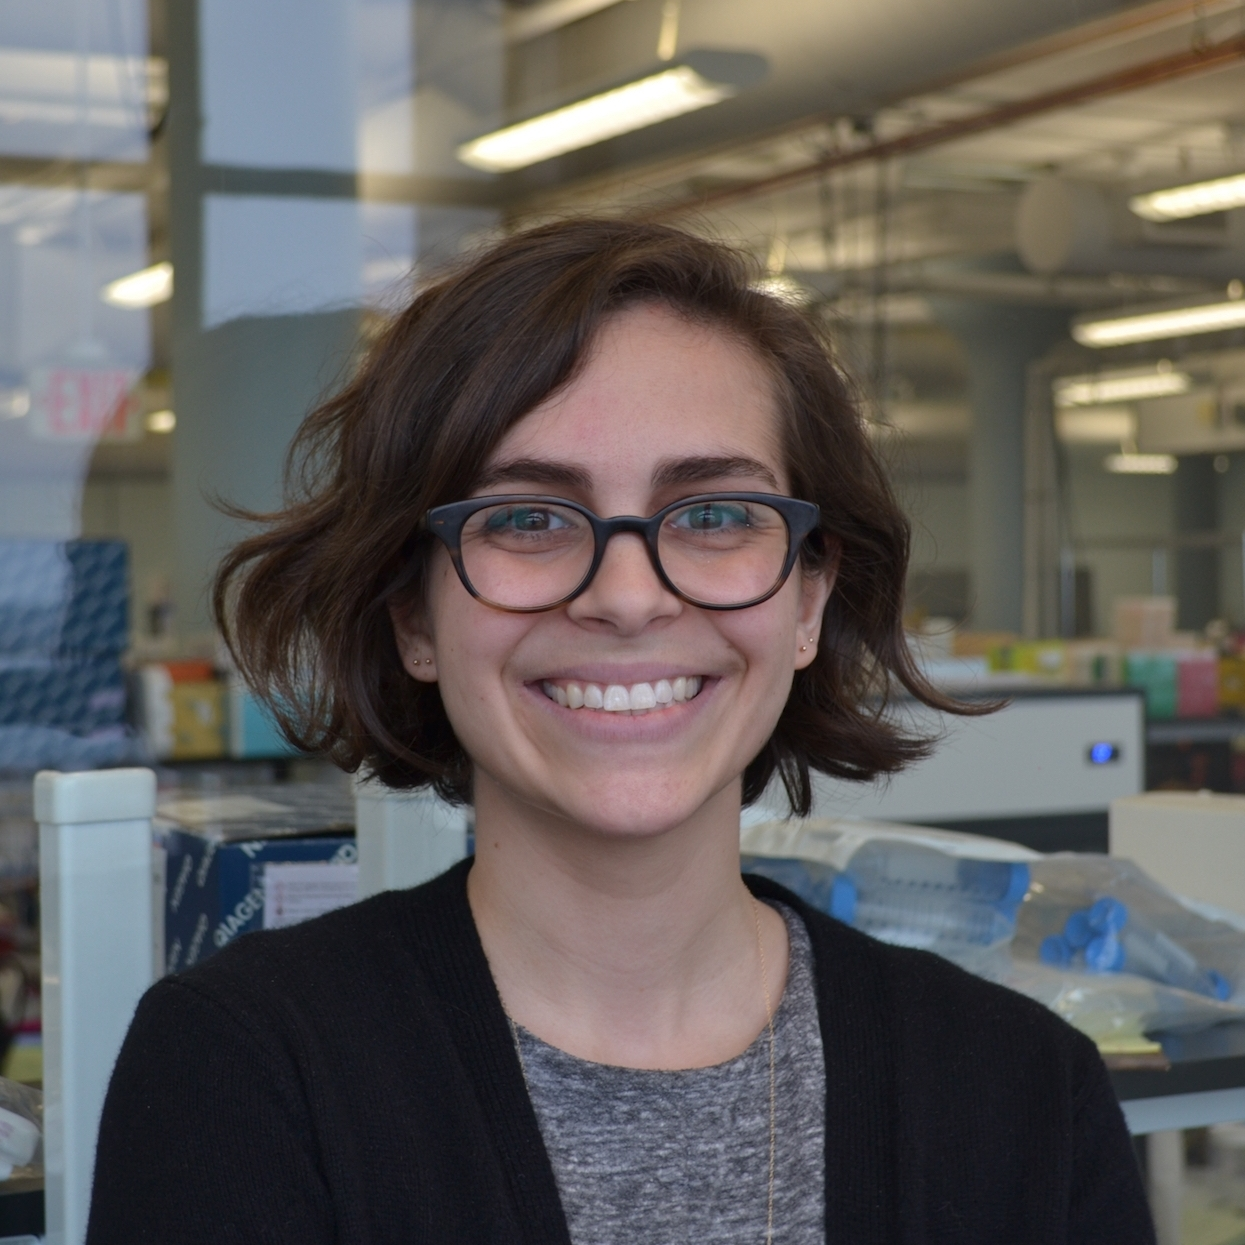 Christina Agapakis - Christina Agapakis, Ph.D., is creative director of Ginkgo Bioworks, a biological design company based in Boston. Her work brings together biologists, engineers, designers, artists, and social scientists to explore the future of biotechnology, from perfume made from extinct flowers to engineered probiotics and GMO beer. During her PhD at Harvard, she worked on producing hydrogen fuel in bacteria and making photosynthetic animals. She has taught designers at the Art Center College of Design and biomolecular engineers at UCLA, and she once made cheese using bacteria from the human body.